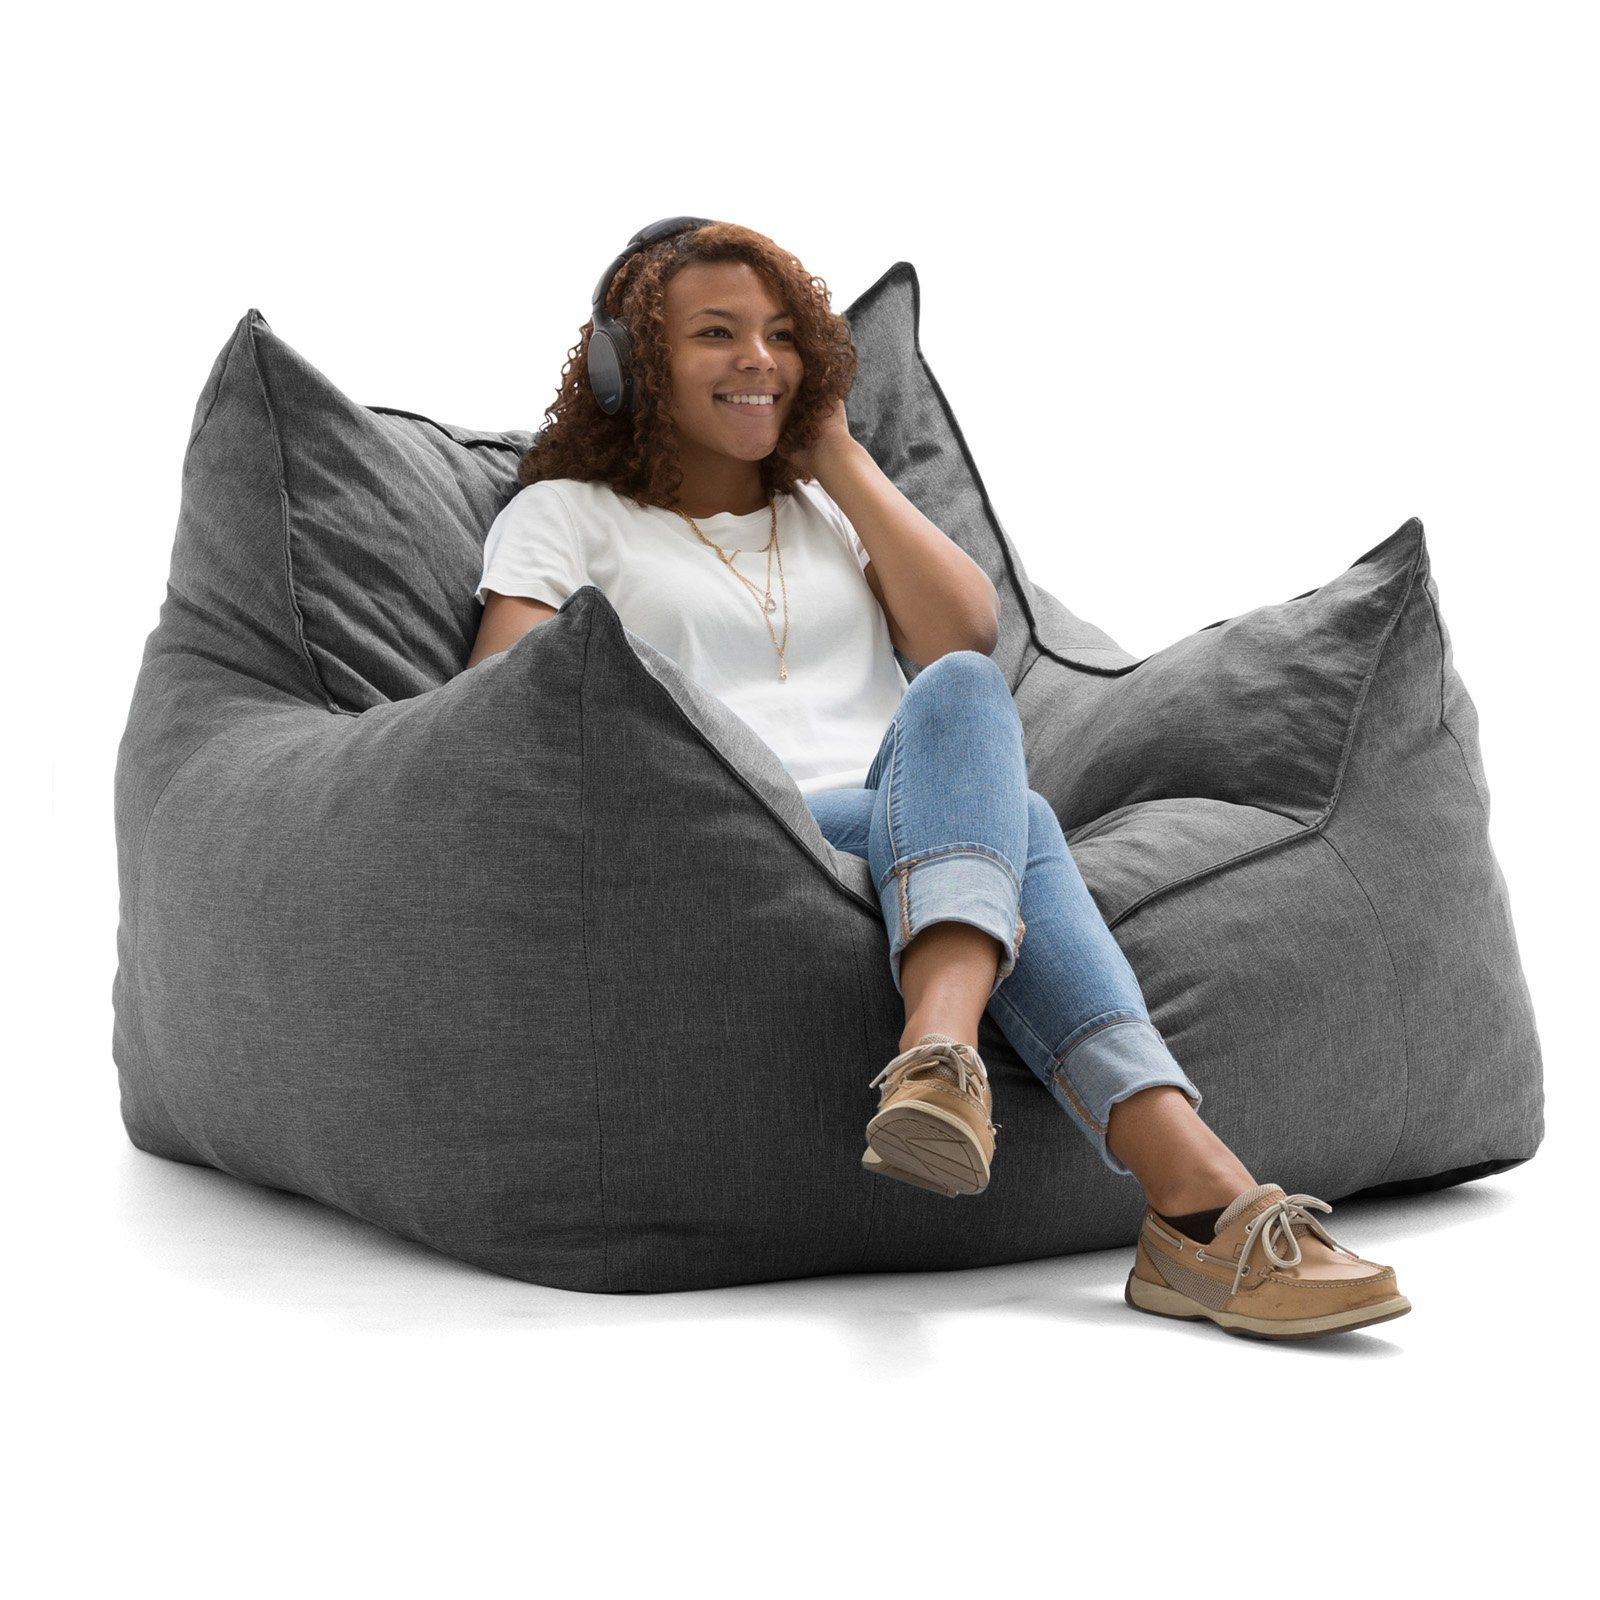 Home With Images Bean Bag Lounger Bean Bag Futon Chair